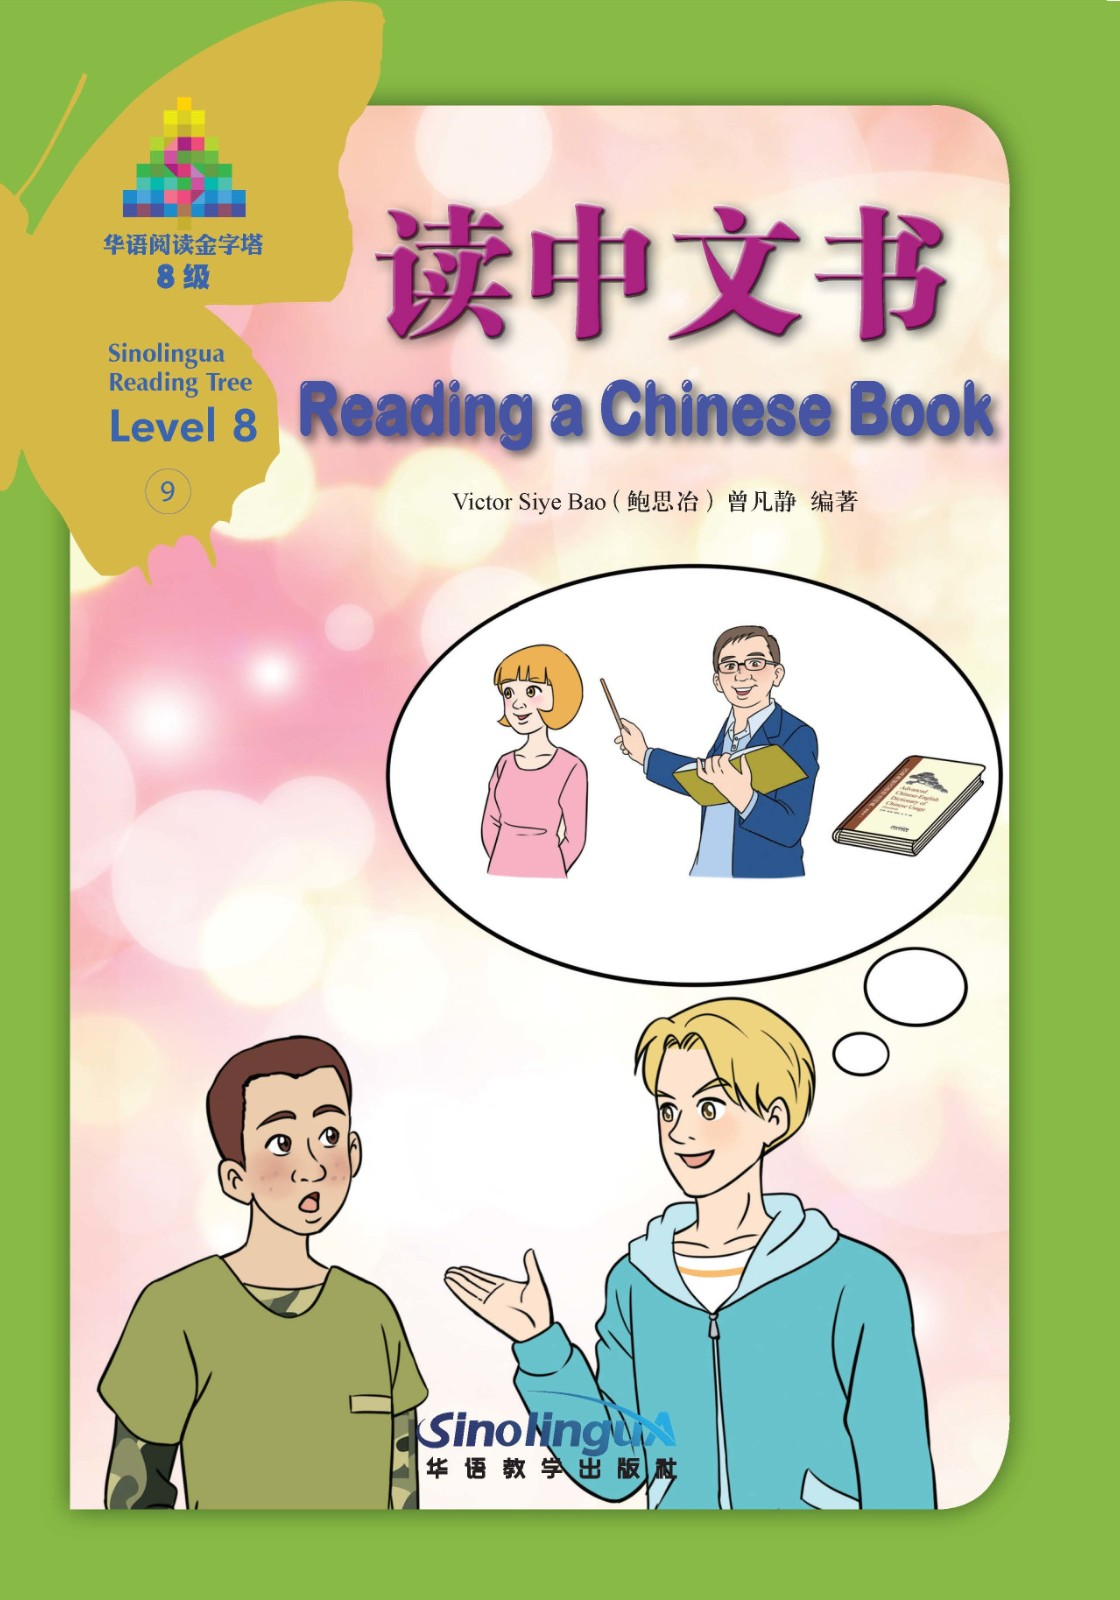 Sinolingua Reading Tree Level 8·9.Reading a Chinese Book